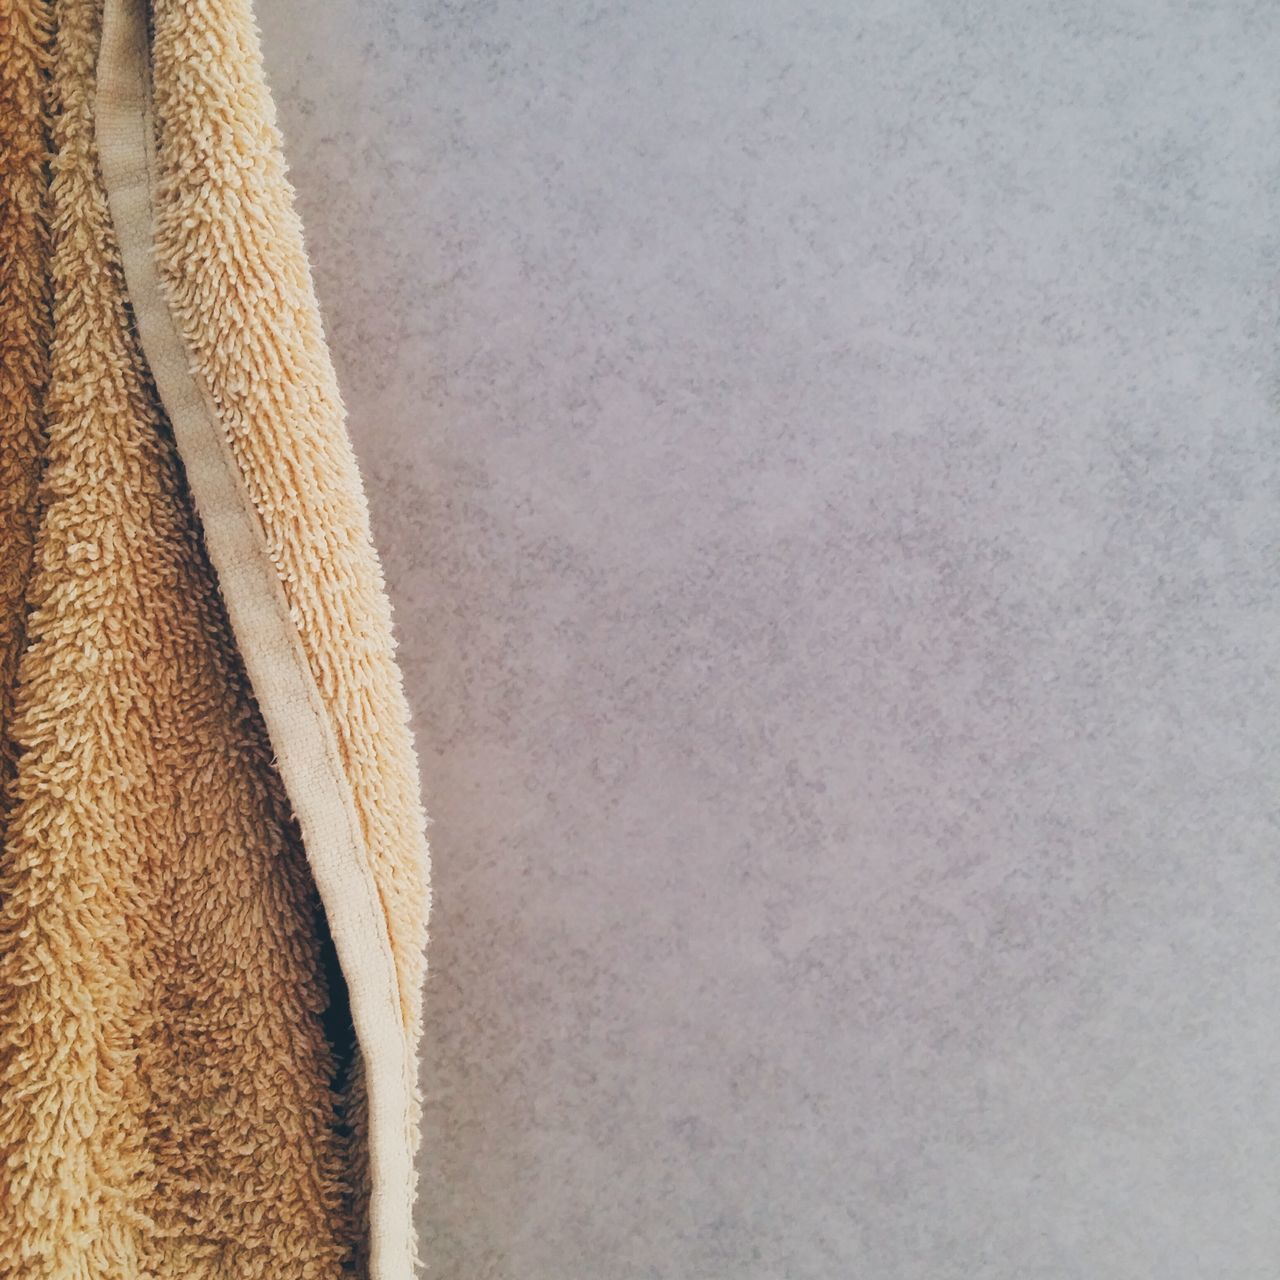 Cropped image of towel hanging on wall at home